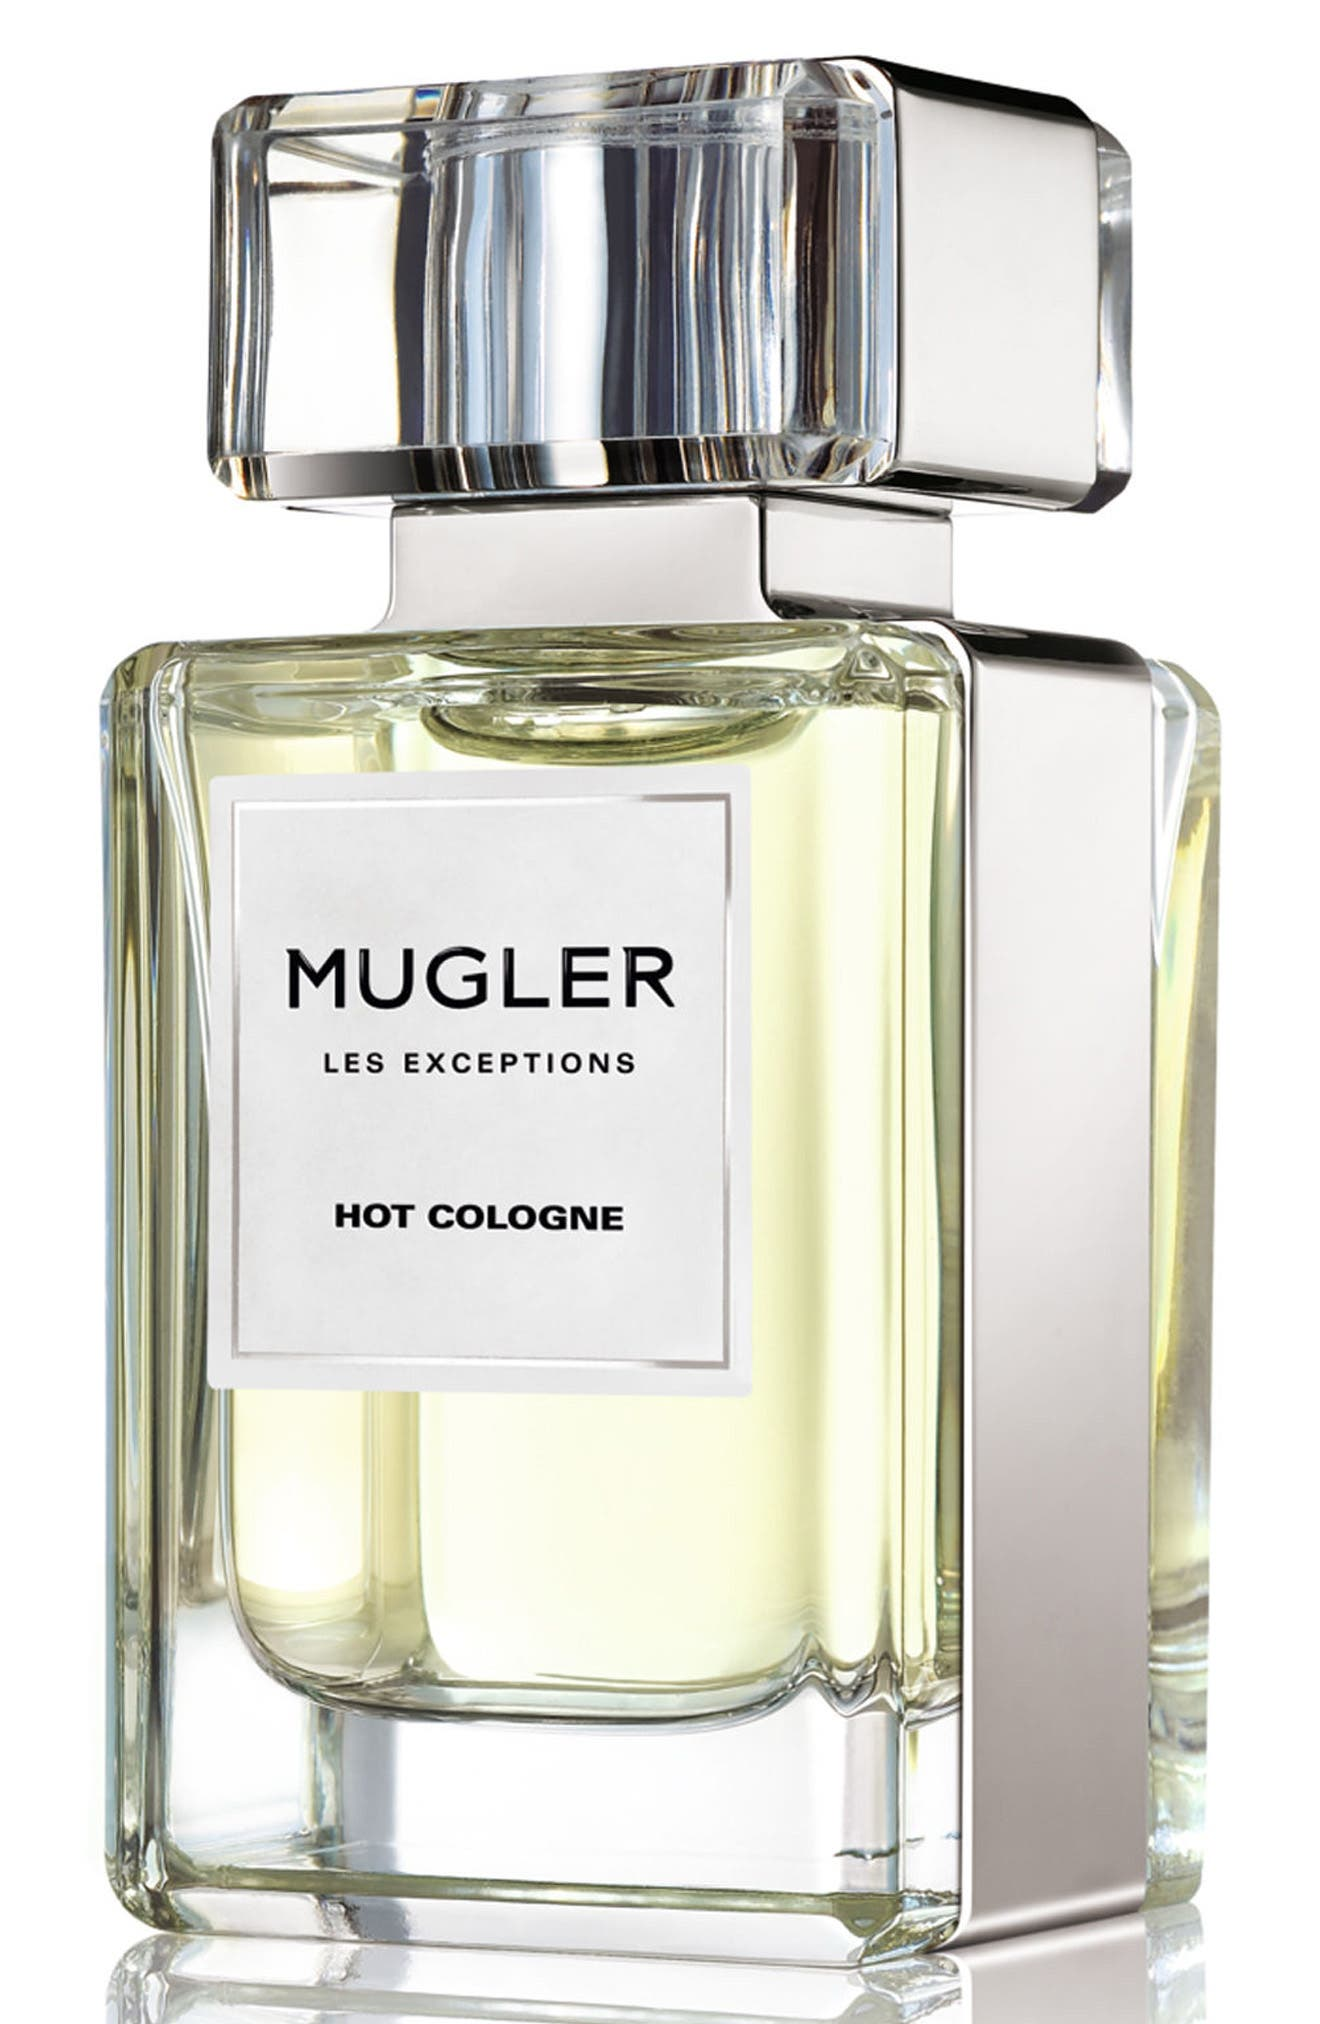 Les Exceptions by Mugler Hot Cologne Eau de Parfum Refillable Spray